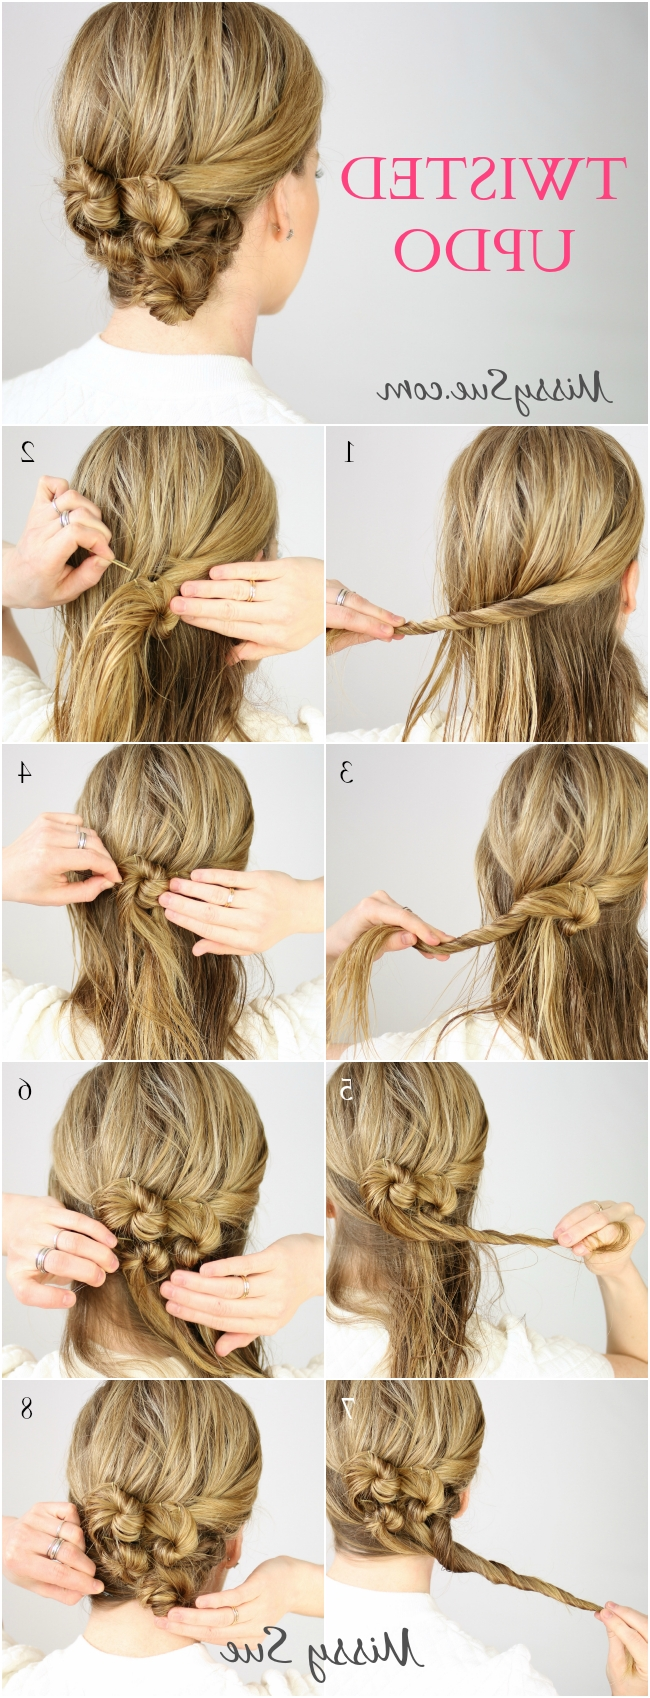 Dutch Braid And Low Bun | Wet Hair, Updo And Hair Twists Pertaining To Wet Hair Updo Hairstyles (View 7 of 15)